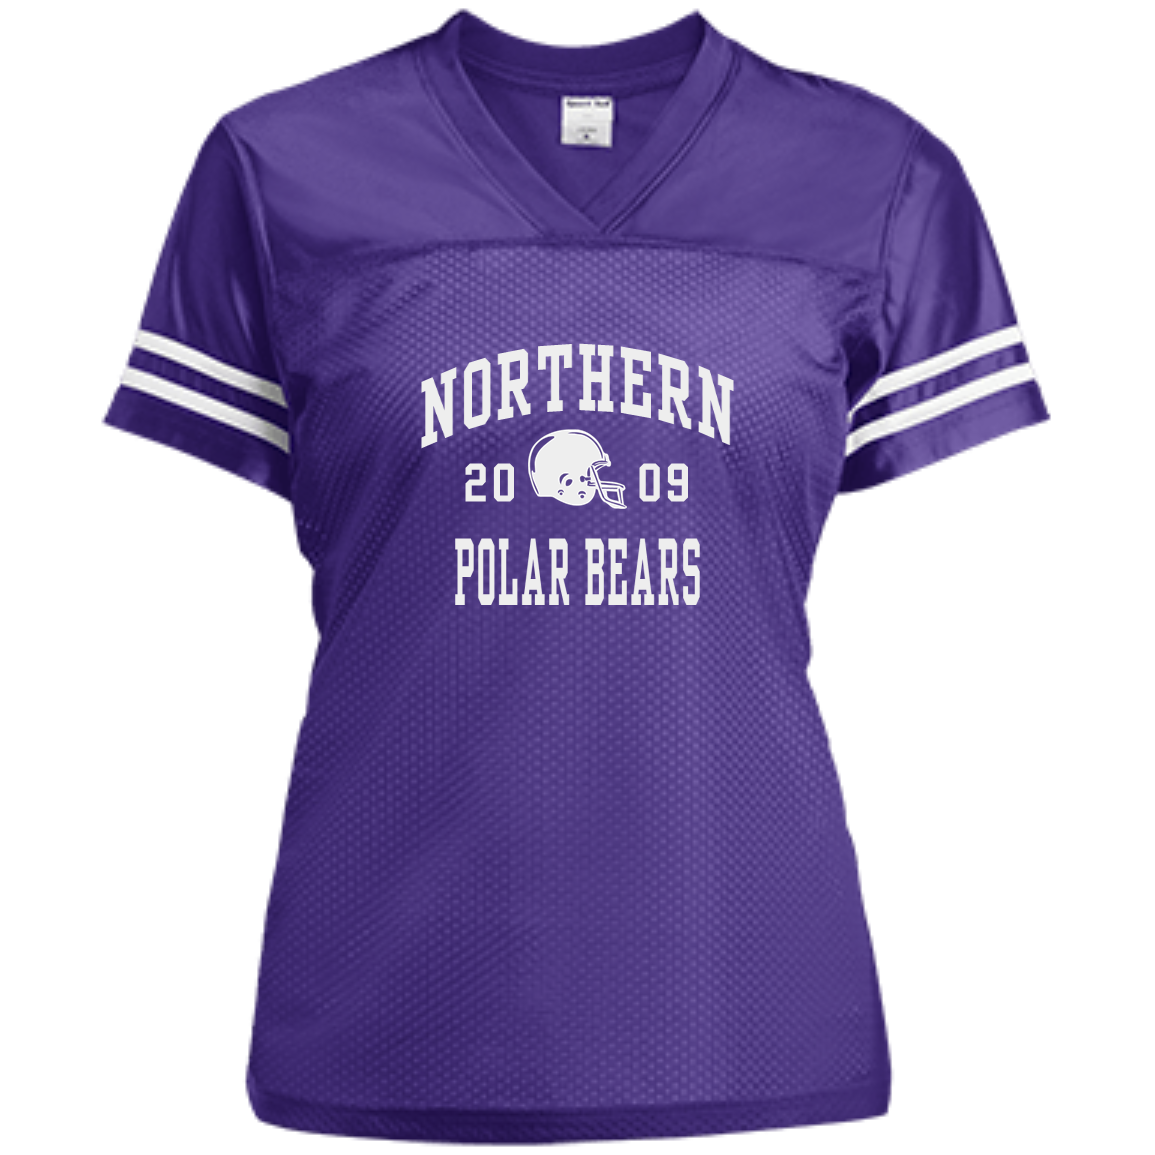 8bae7bc3e Northern York High School Womens Custom Apparel and Merchandise. football  fan jersey